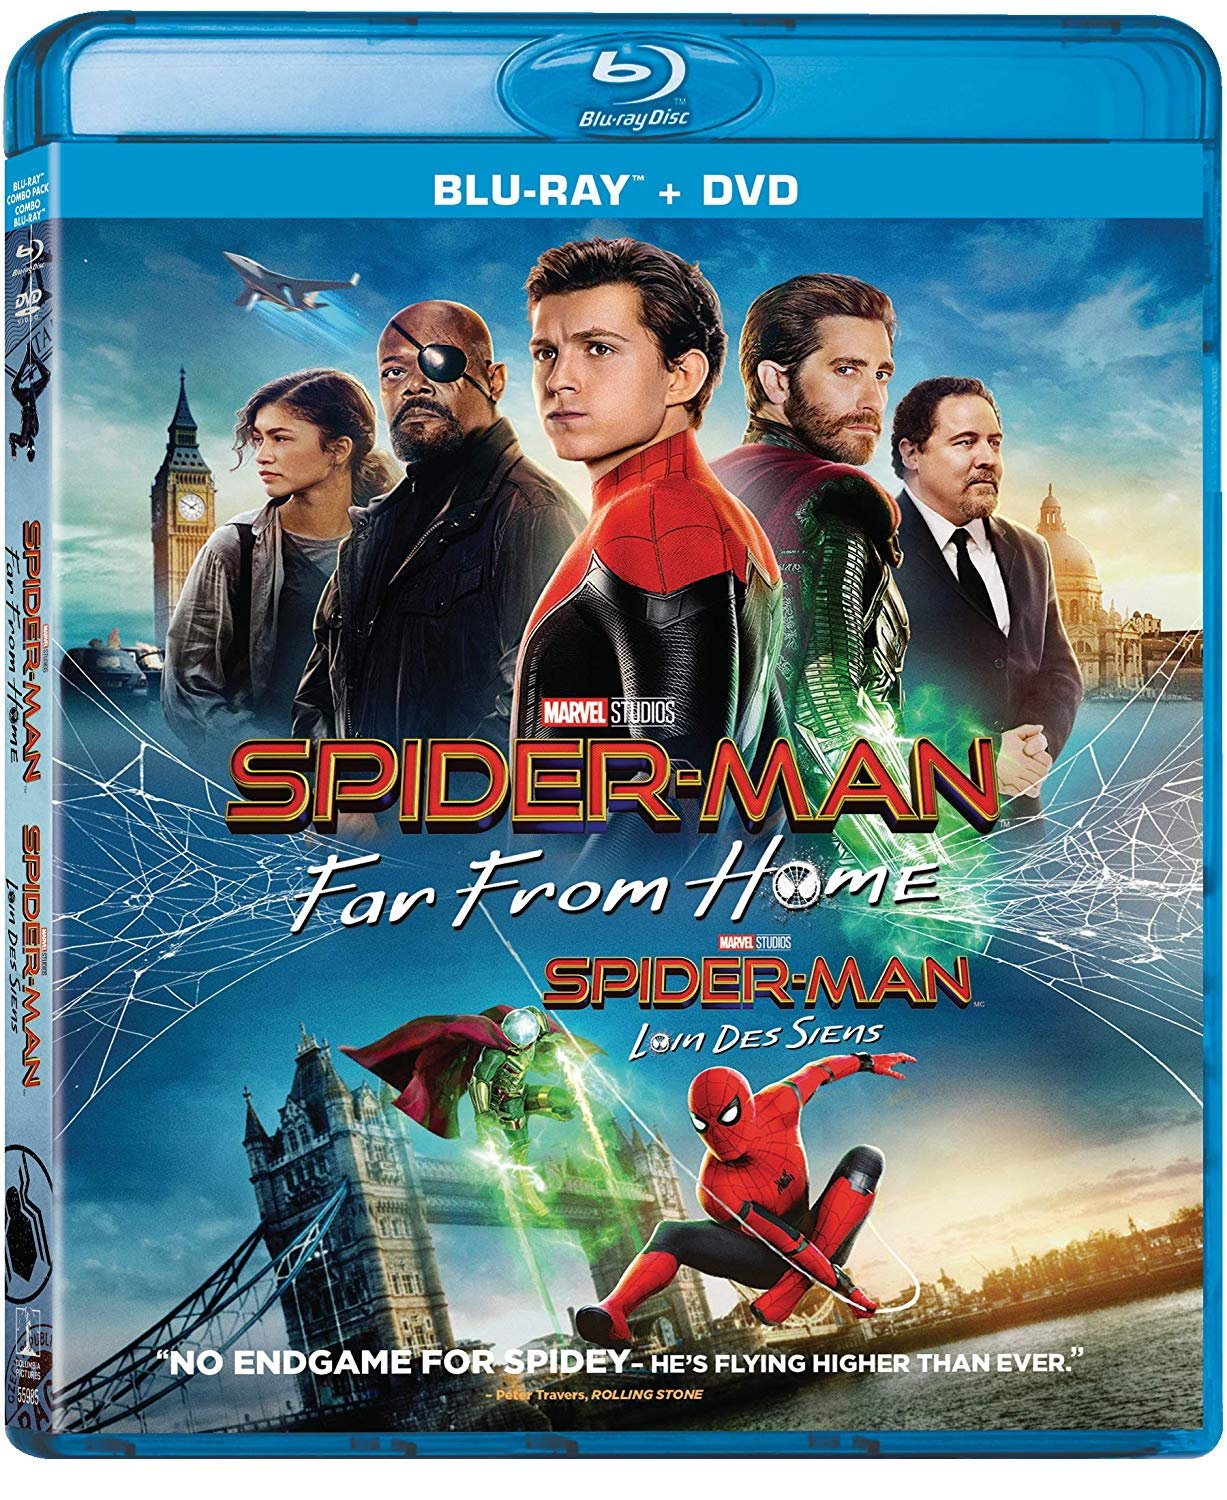 Spider-Man: Far From Home Blu-ray DVD